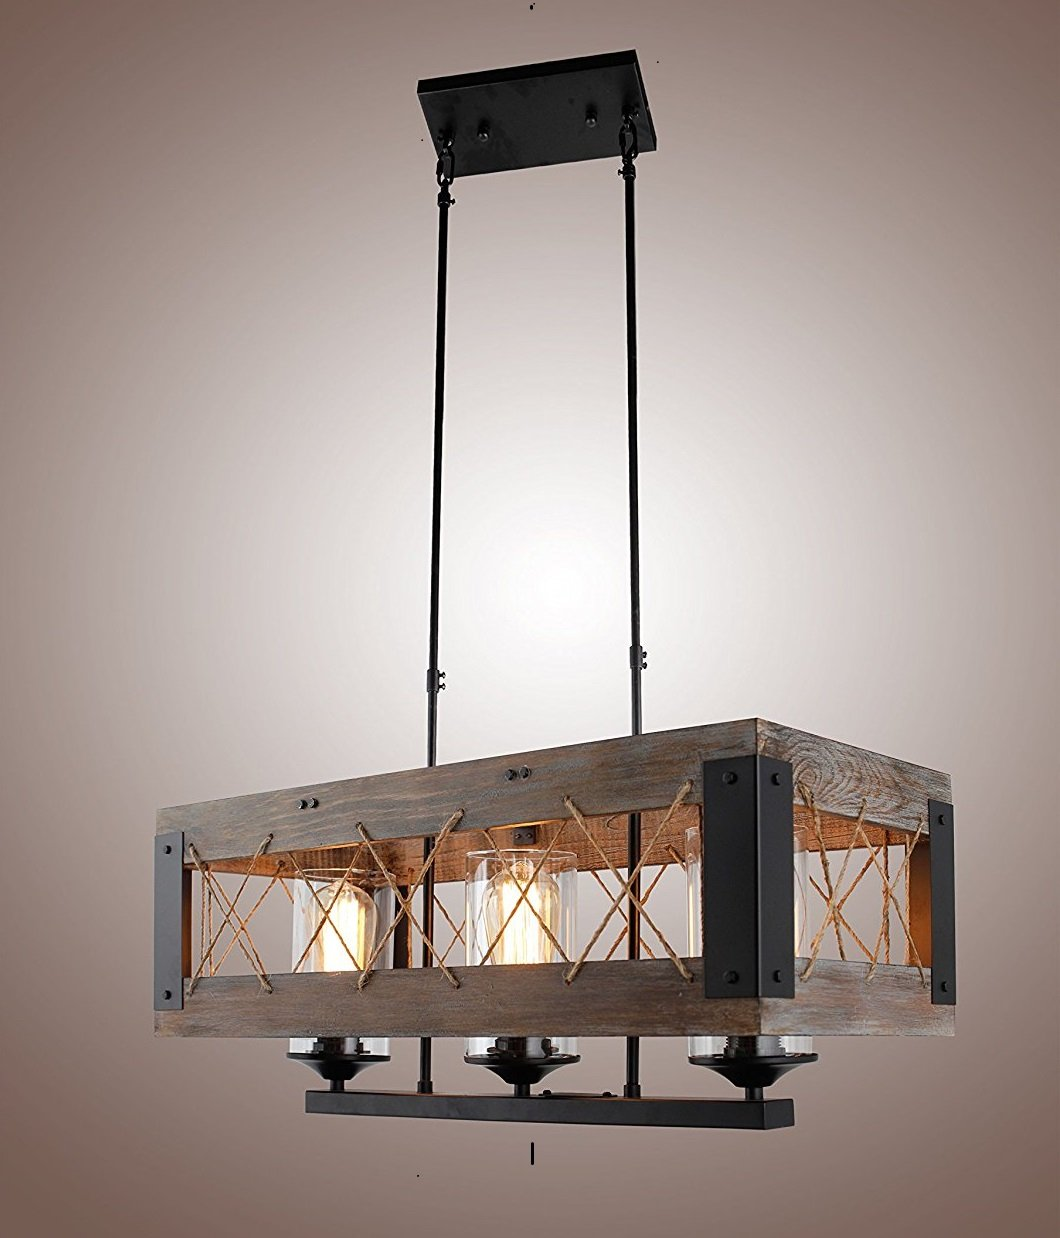 Wood rectangular pendant lighting chandeliers kitchen island lighting hanging ceiling light fixture vintage rustic oil black 24 inches 3 lights